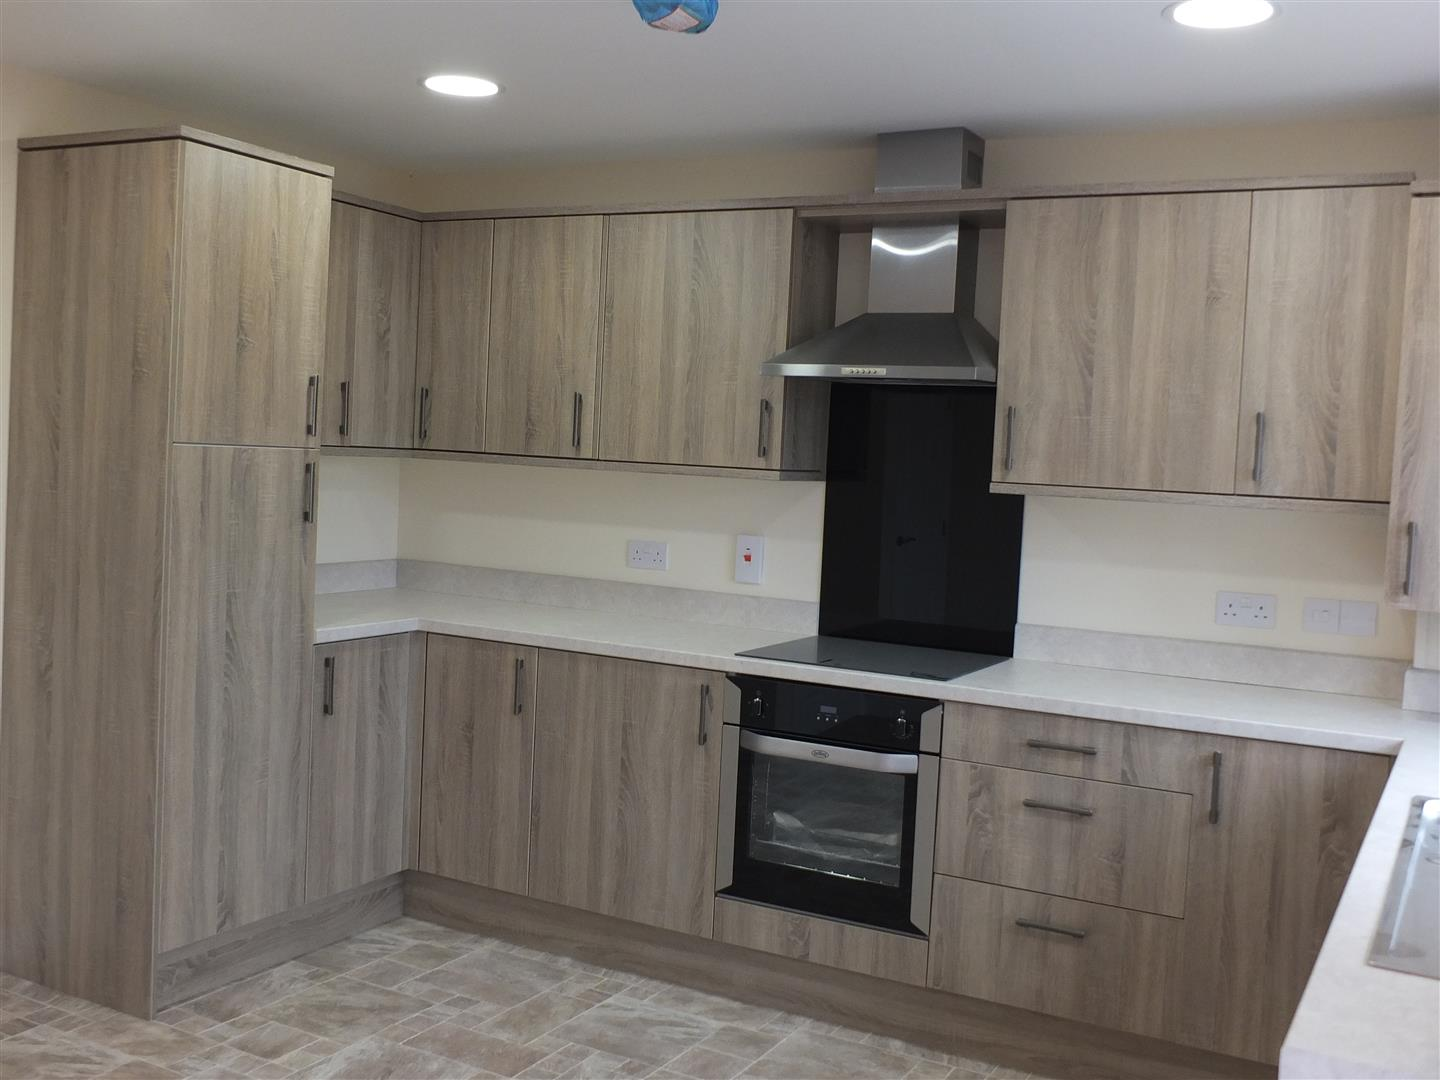 3 bed house to rent in Little London, Long Sutton 4